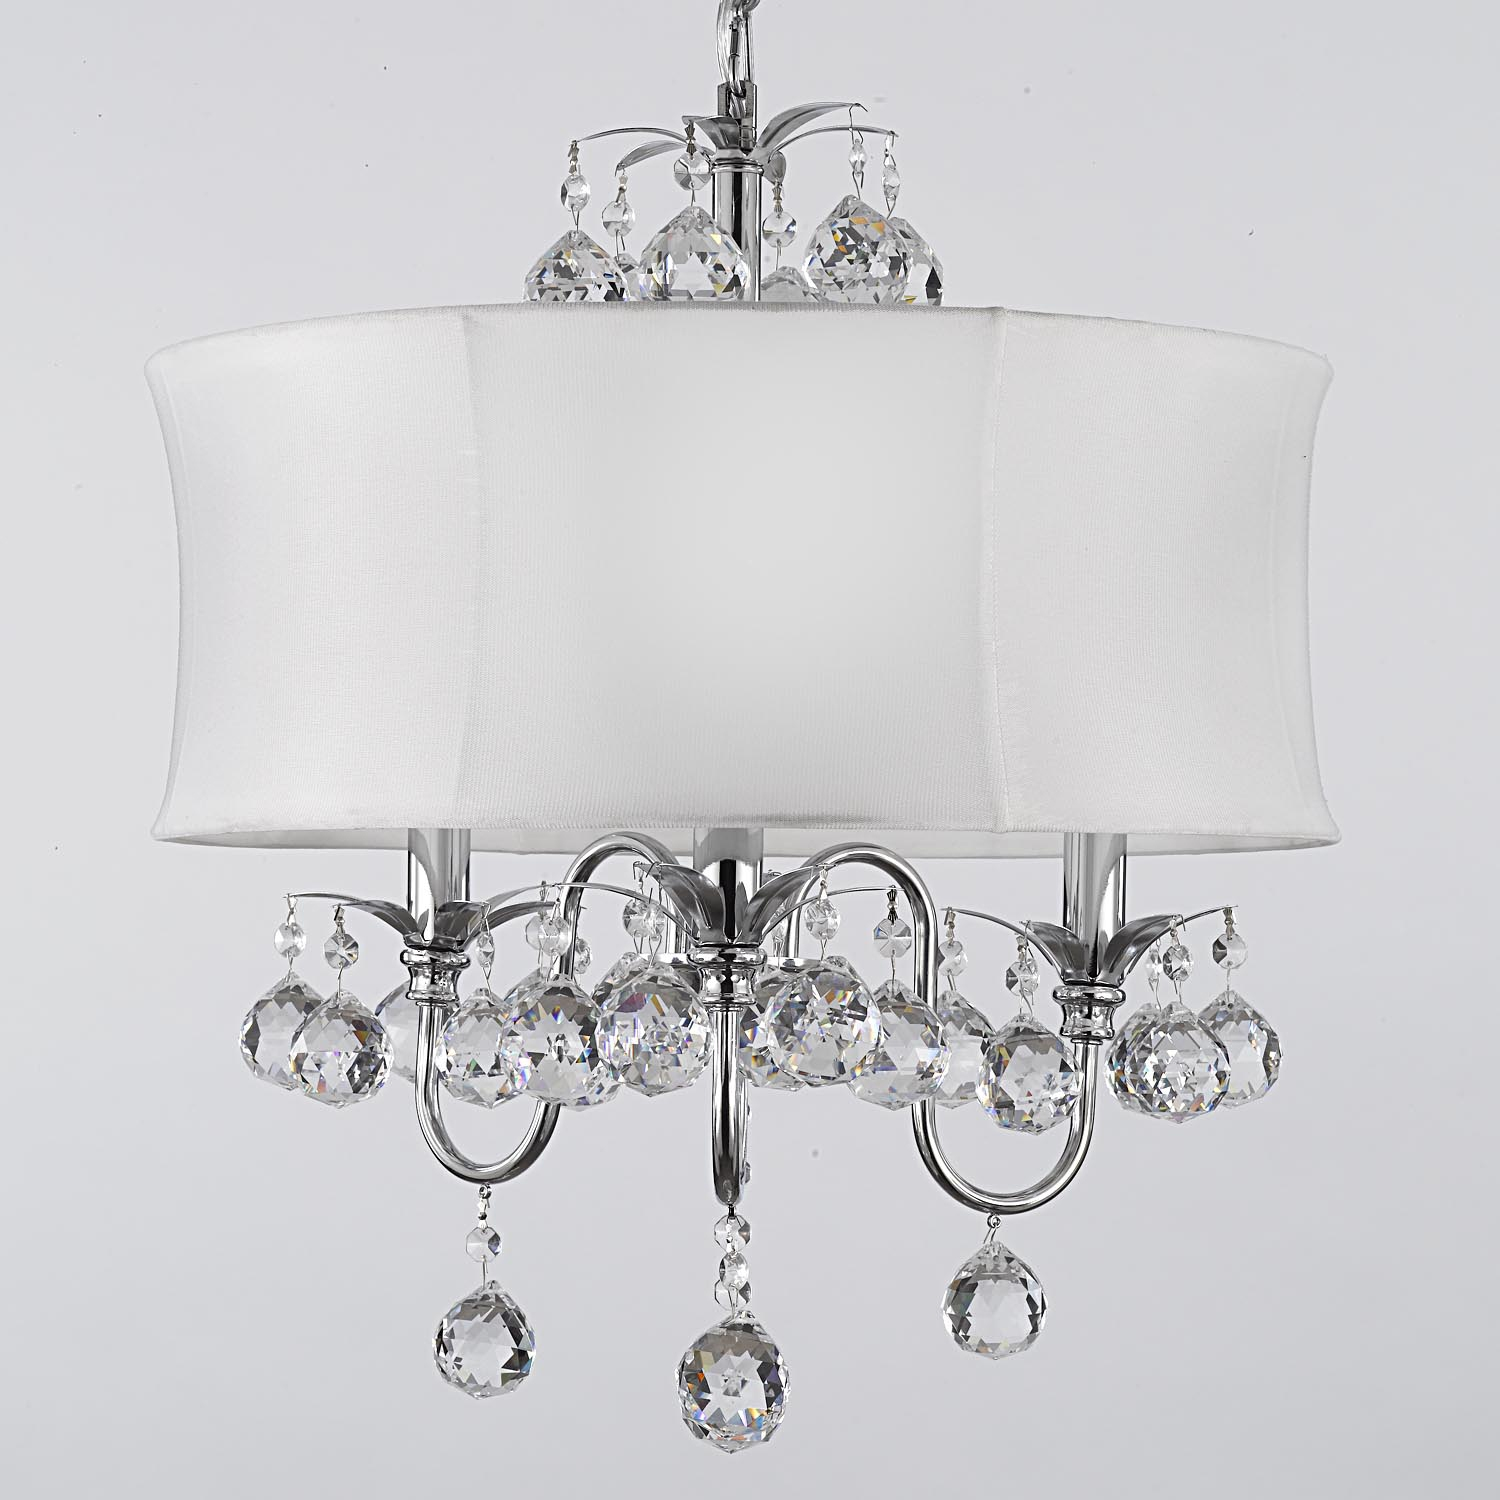 Lamps Ceiling Chandeliers Modern White Chandelier Ceiling Light Pertaining To White Contemporary Chandelier (Image 10 of 15)